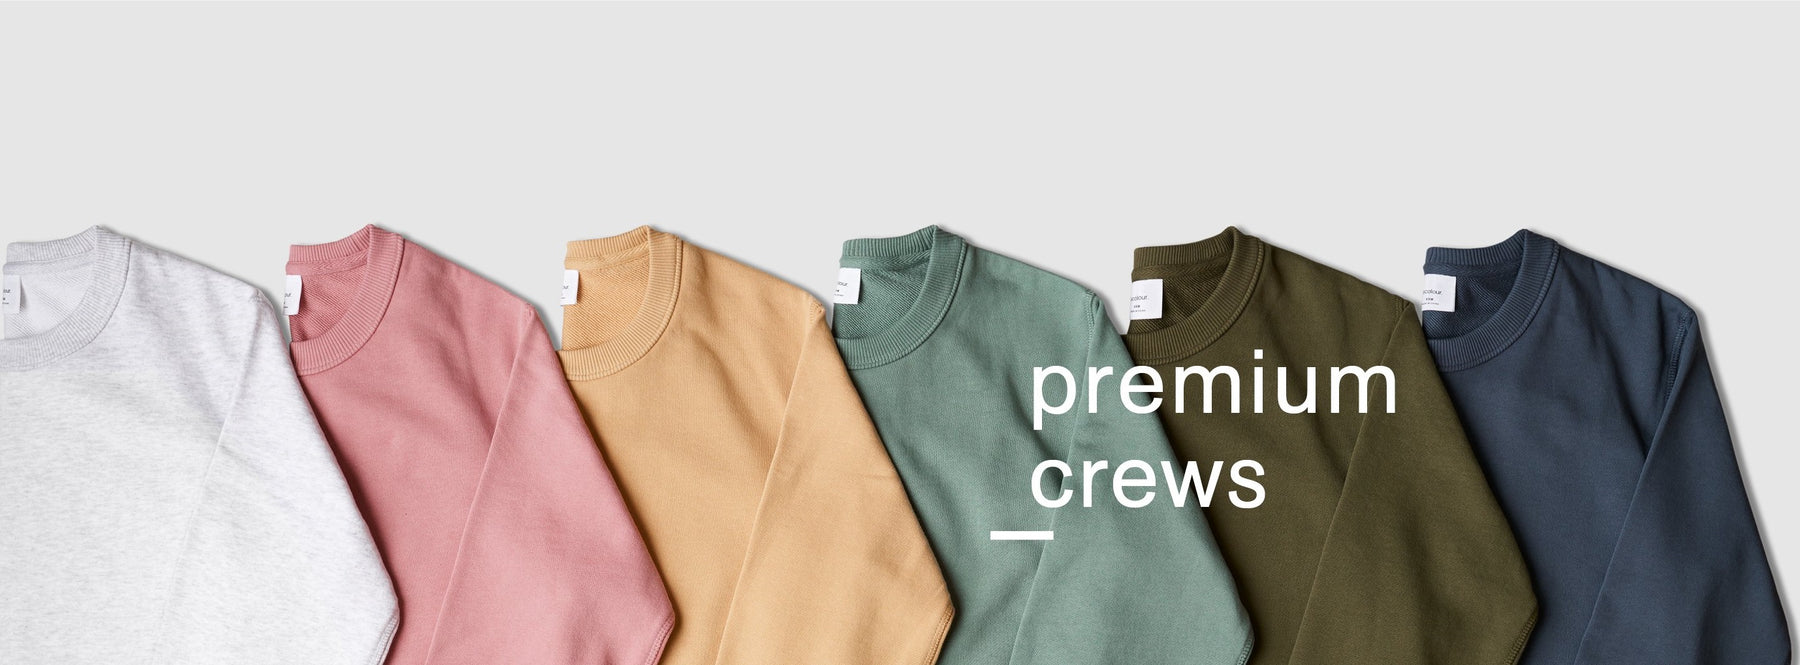 AS Colour 5121 Men's Premium Crew Sweatshirt